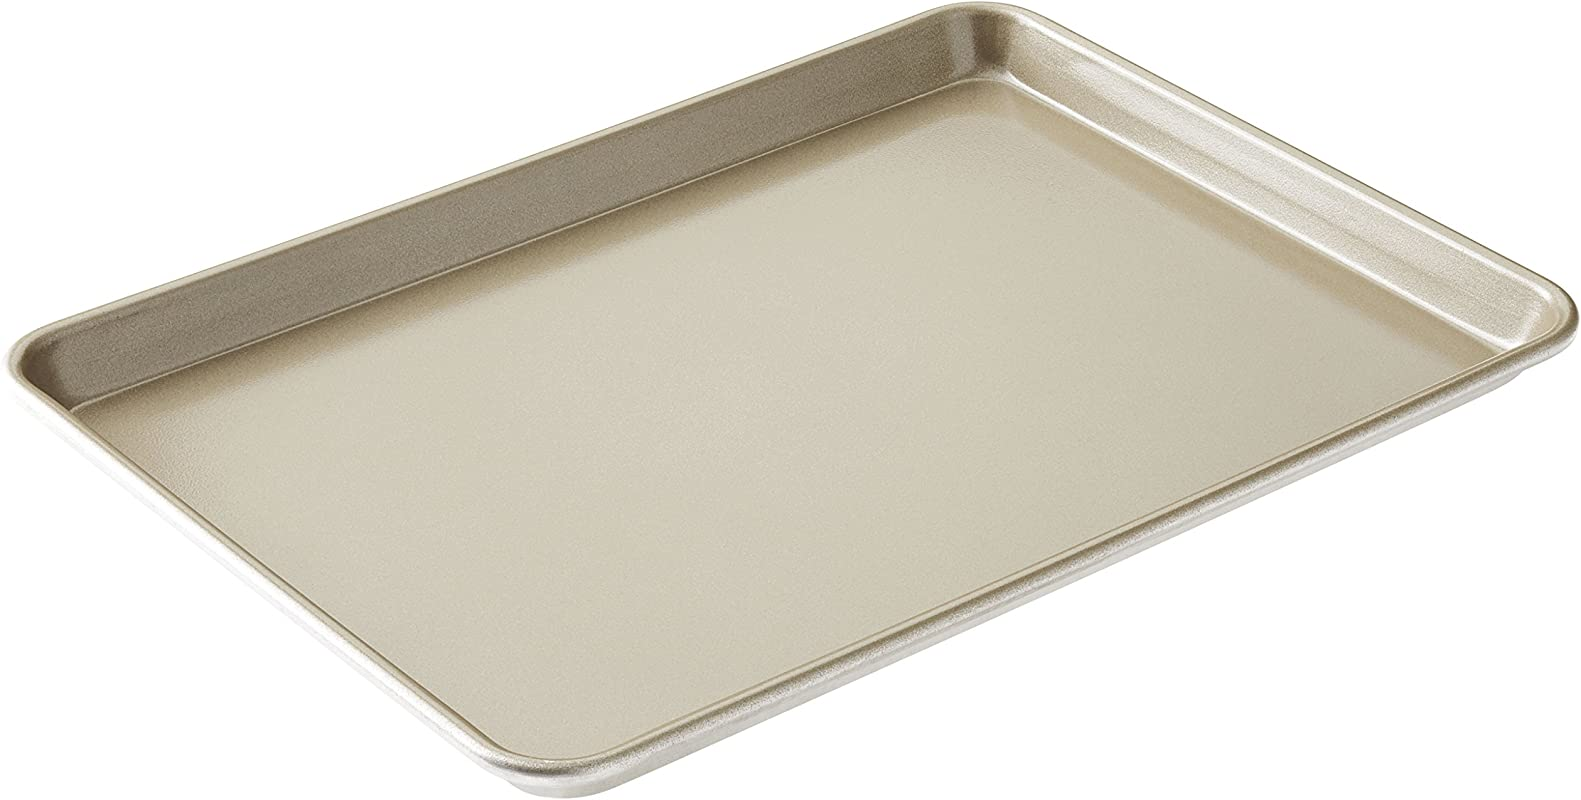 American Kitchen Cookware Large Non Stick Jelly Roll Pan